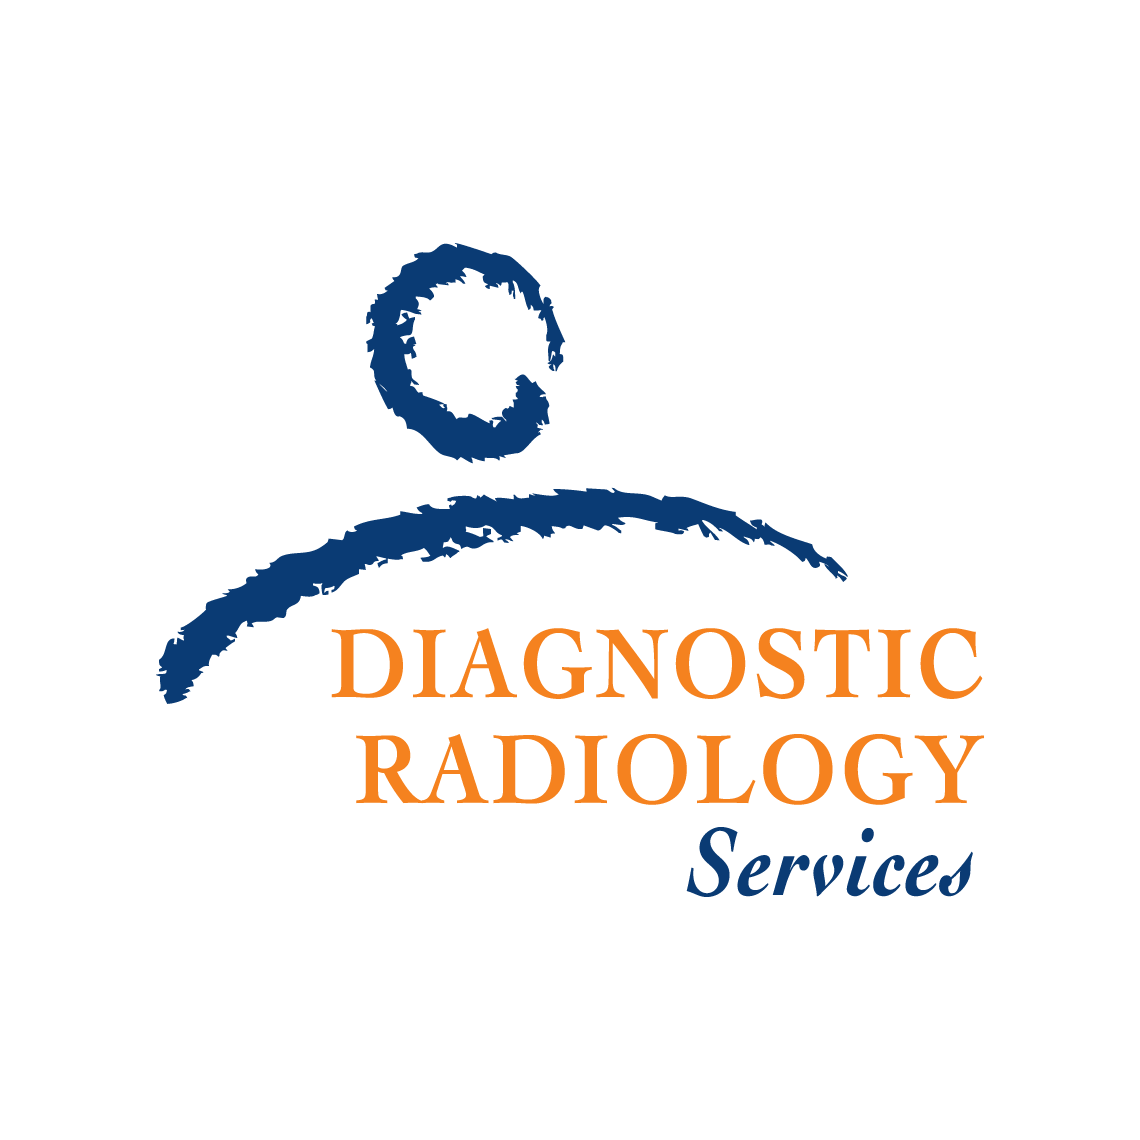 Diagnostic Radiology Services